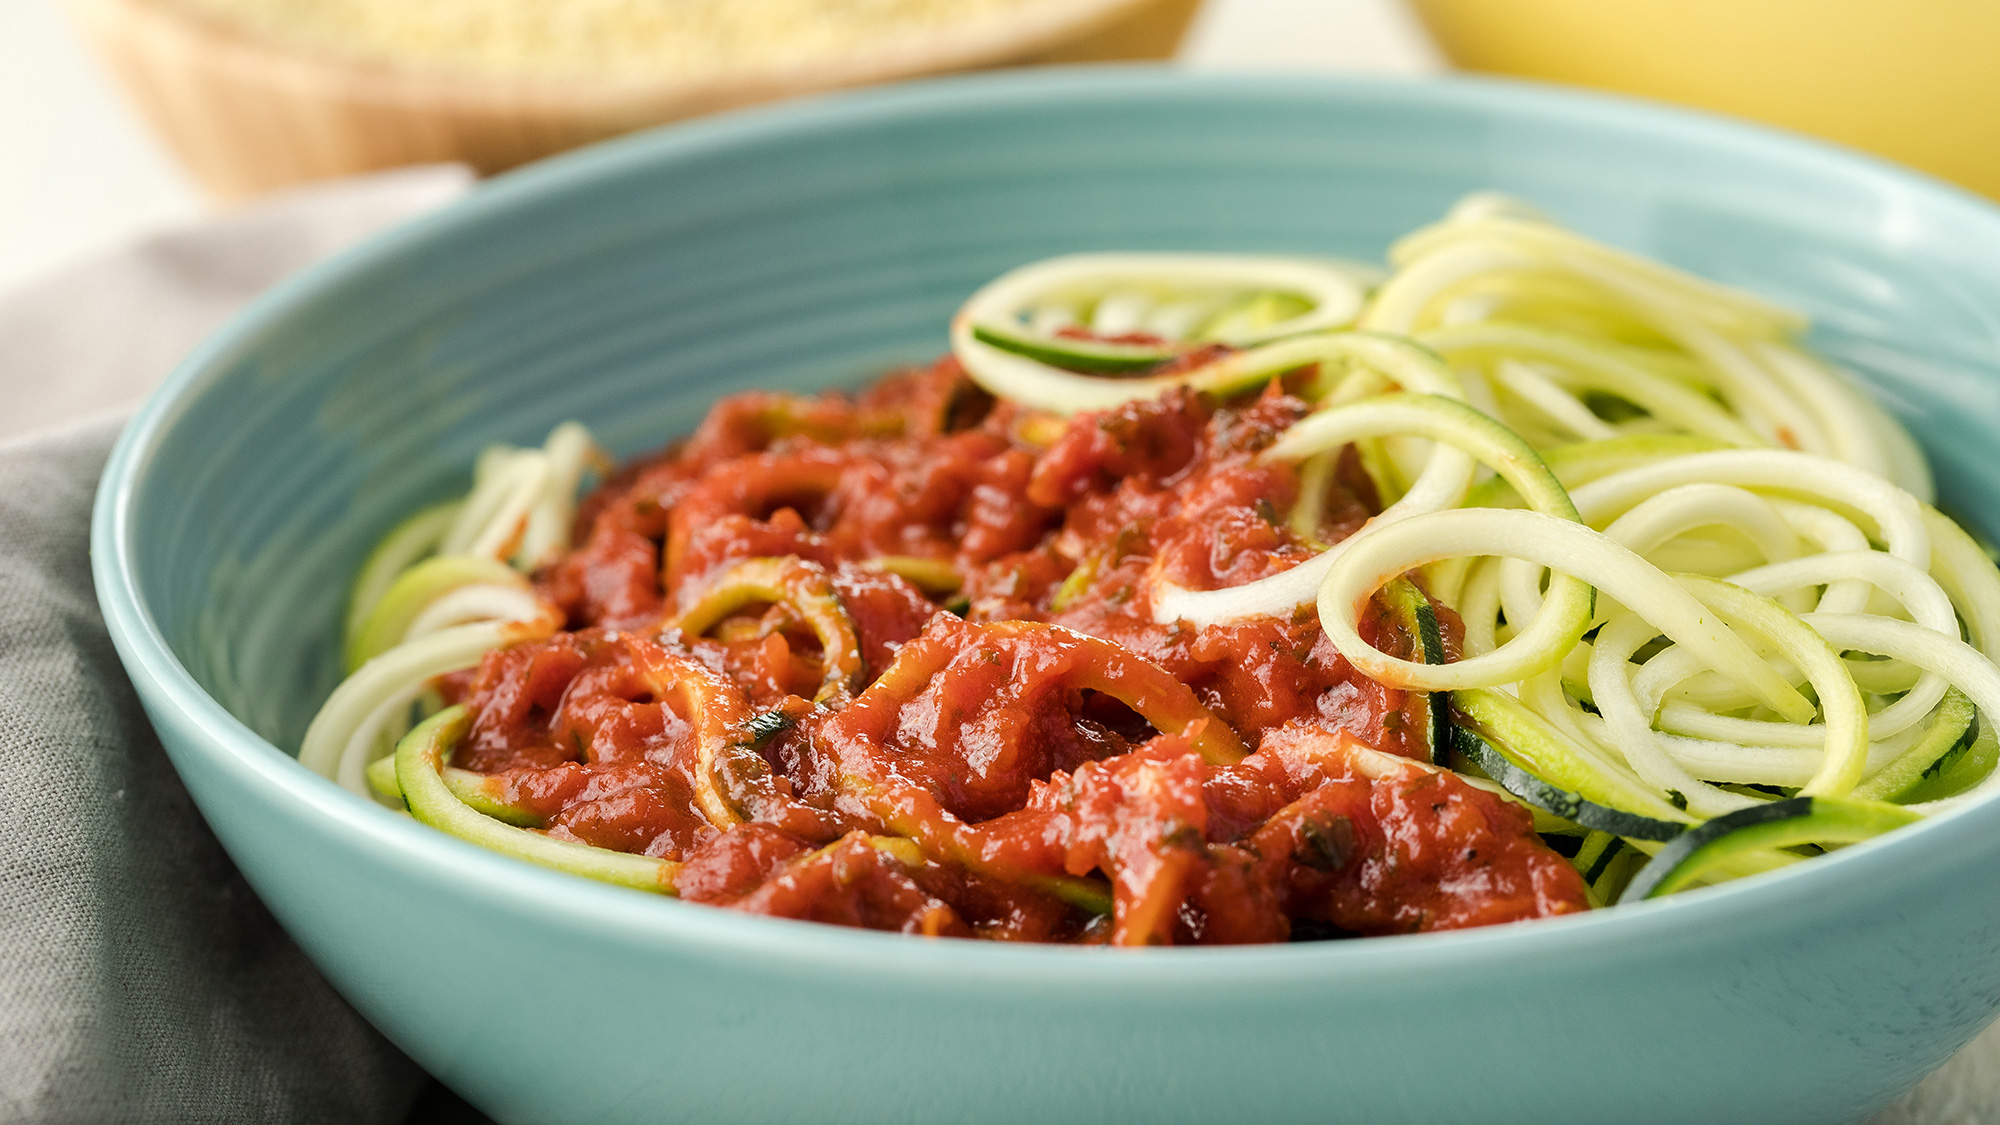 Tia's Roasted Marinara Sauce